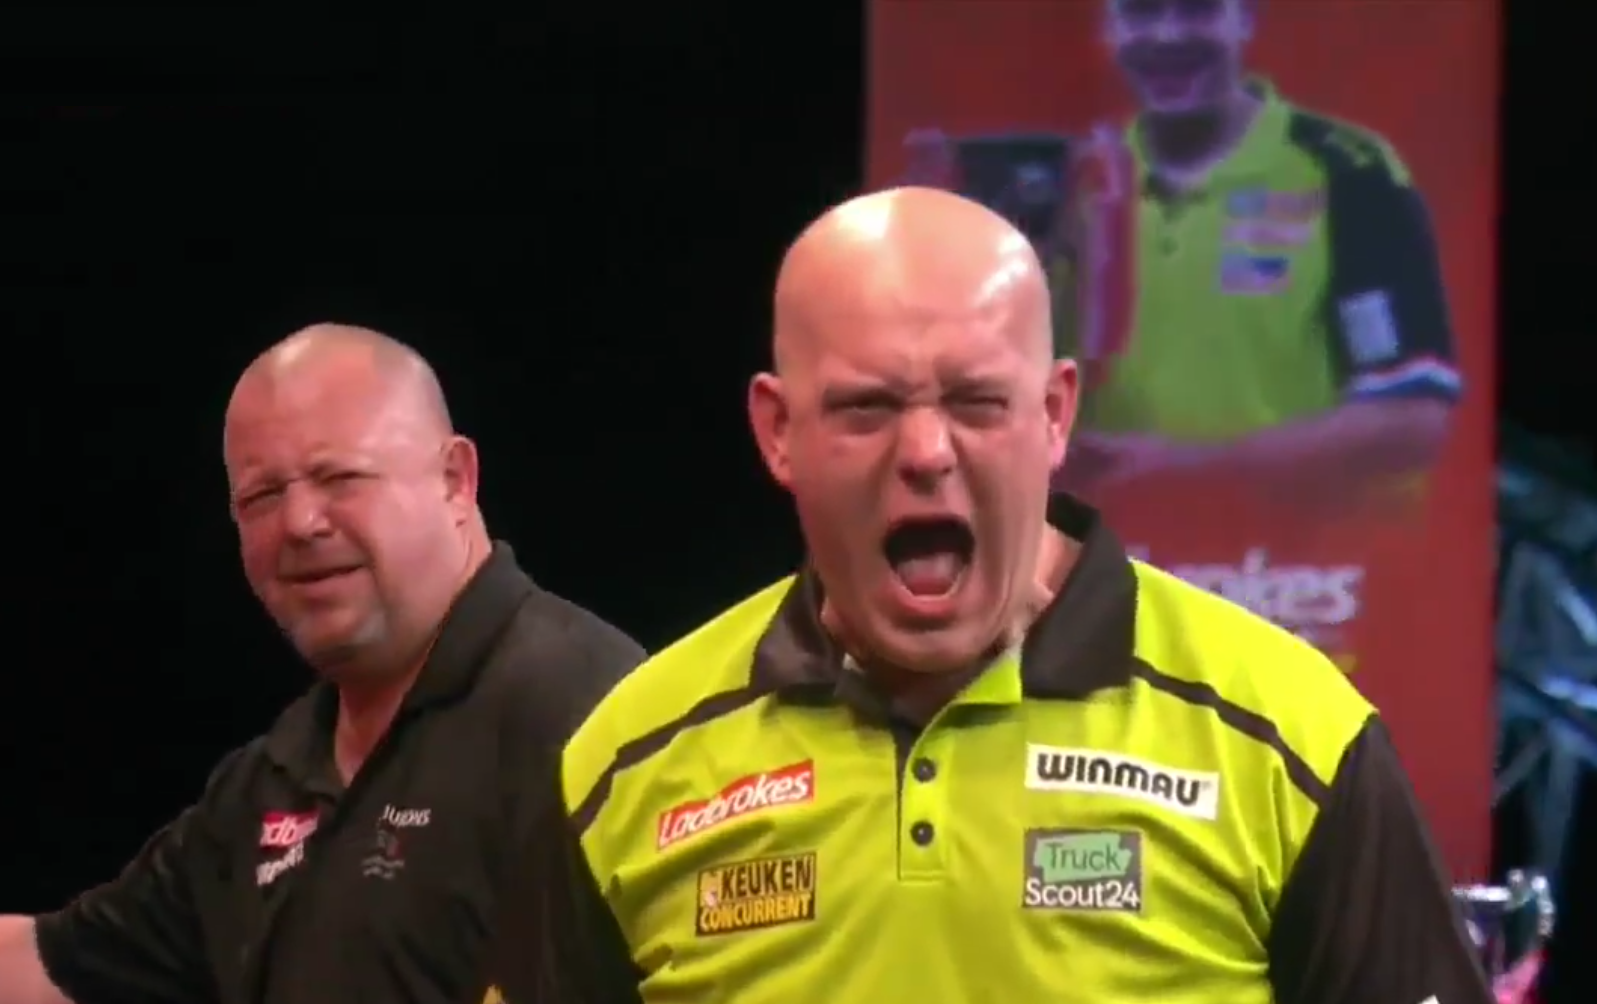 VIDEO: King Calls Van Gerwen A Twat And Is Unhappy With His Celebrations